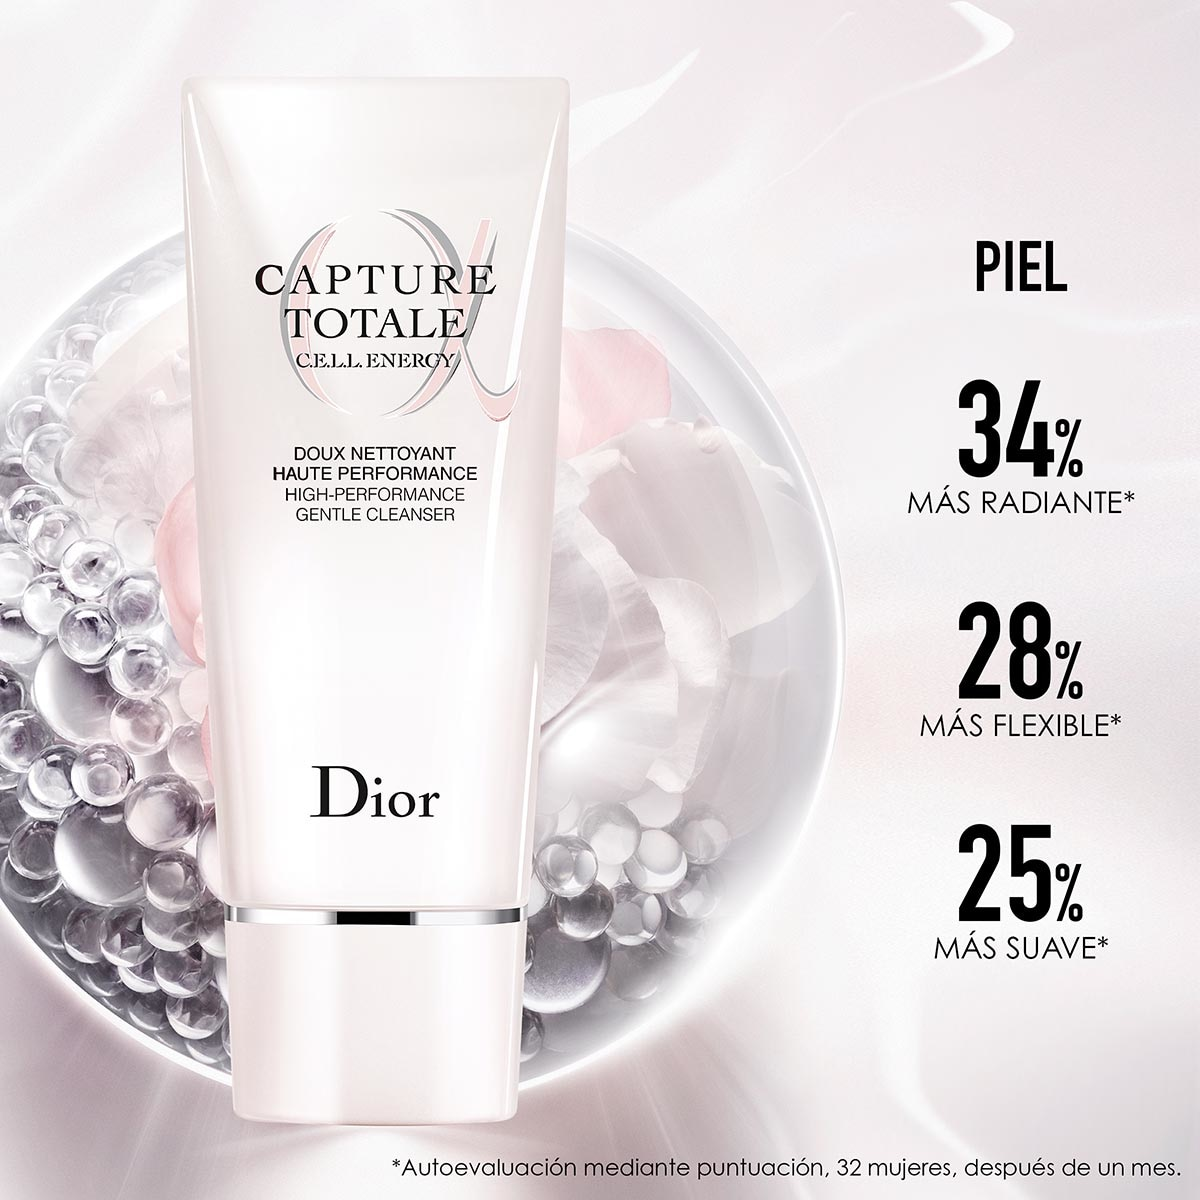 CAPTURE TOTALE HIGH-PERFORMANCE GENTLE CLEANSER 150ML